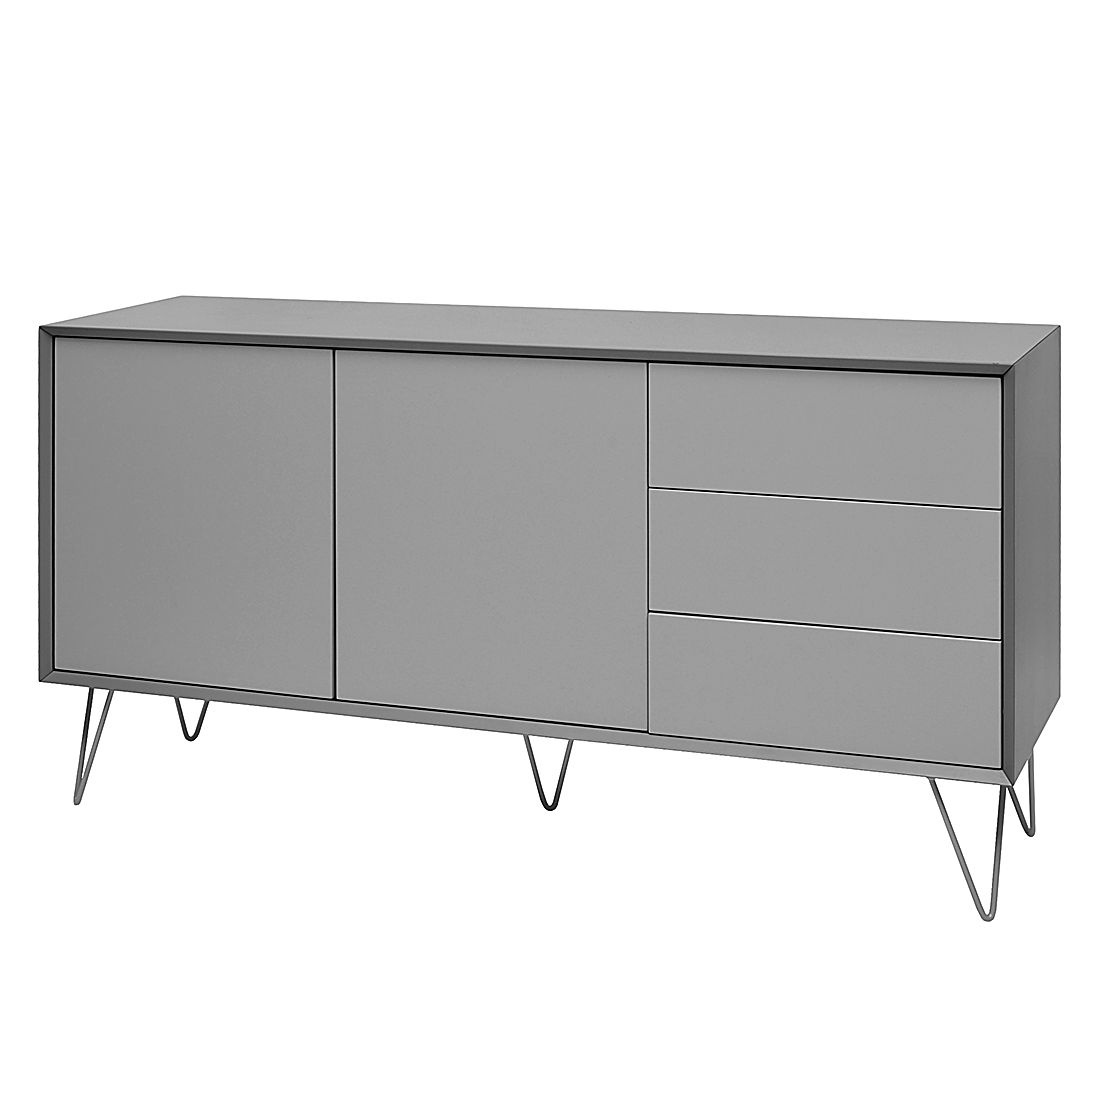 sideboard jerrell i matt grau reconcept m sod kl0092 isso m bel. Black Bedroom Furniture Sets. Home Design Ideas